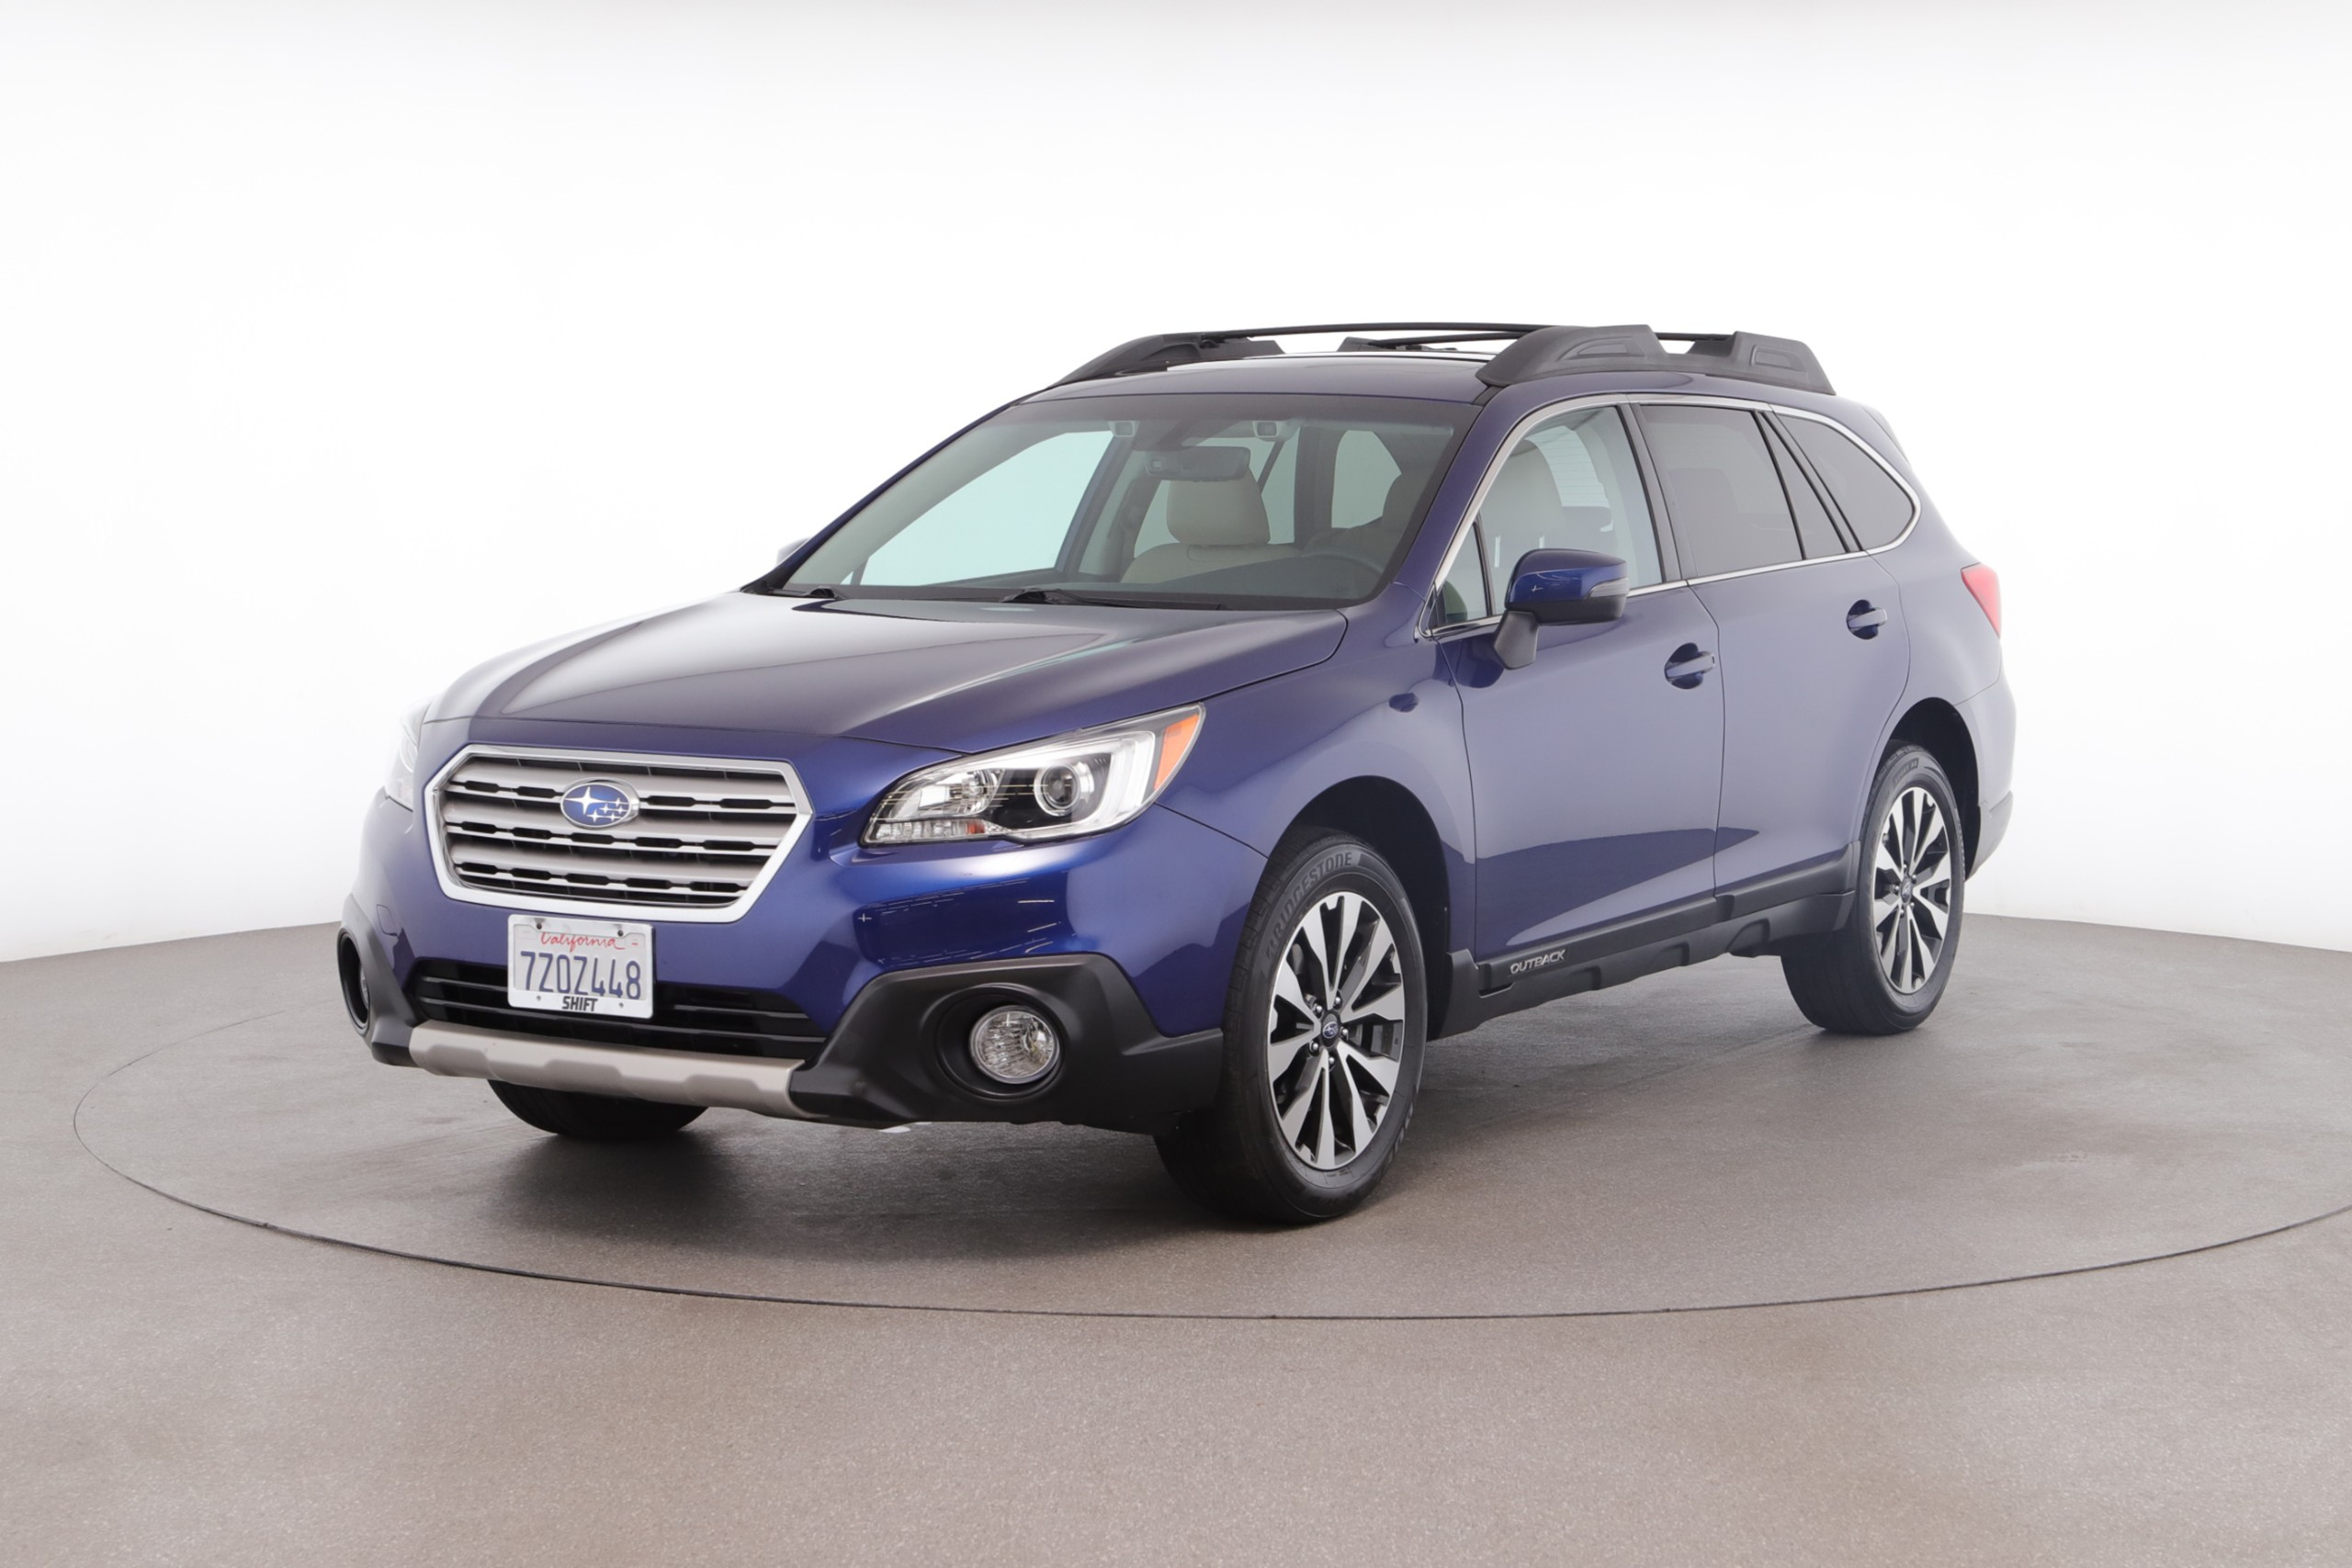 2017 Subaru Outback Limited (from $25,950)